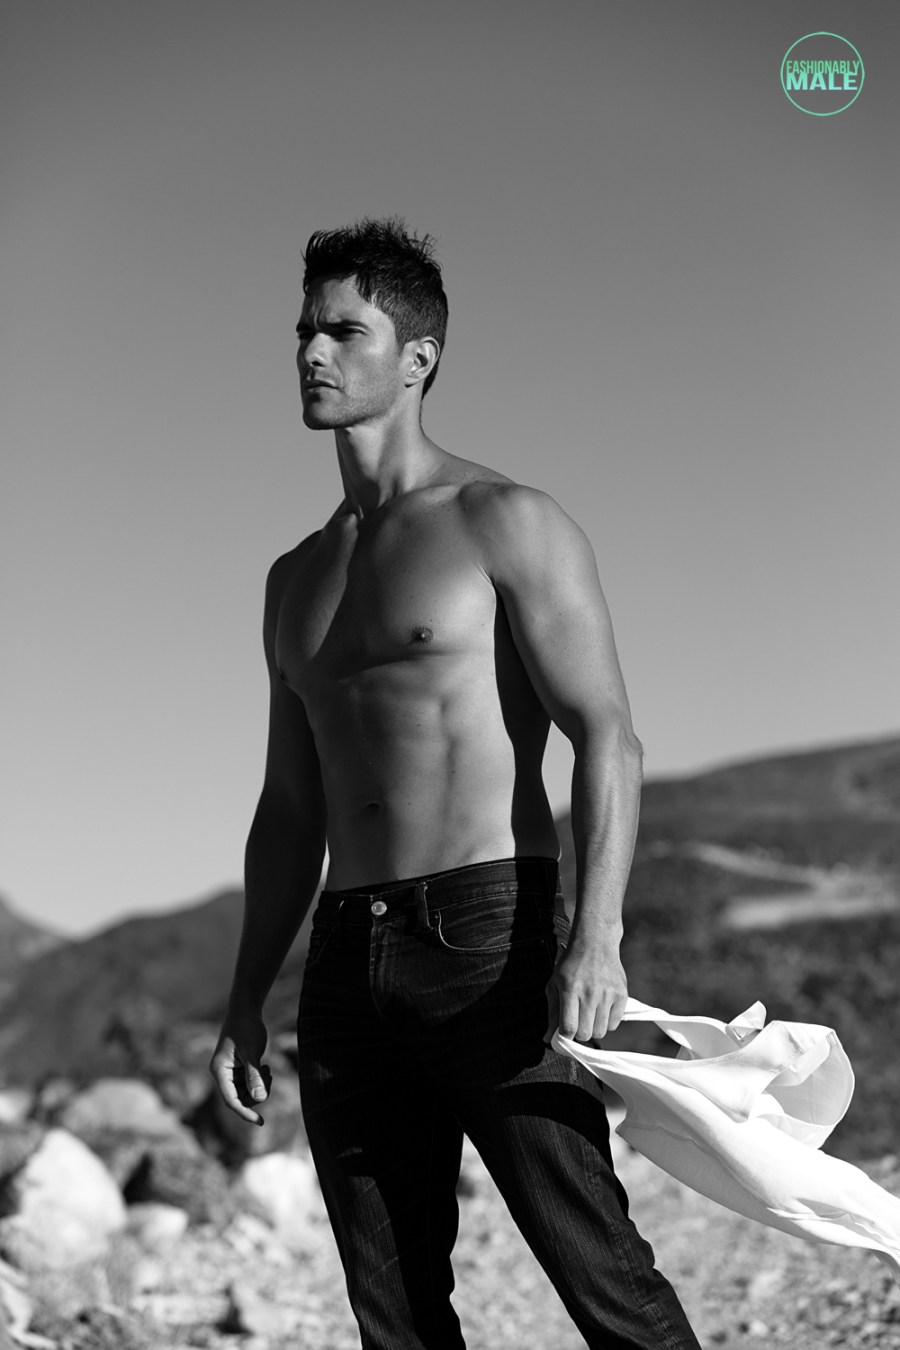 Augusto and Louis by Ivan Avila for Fashionably Male21